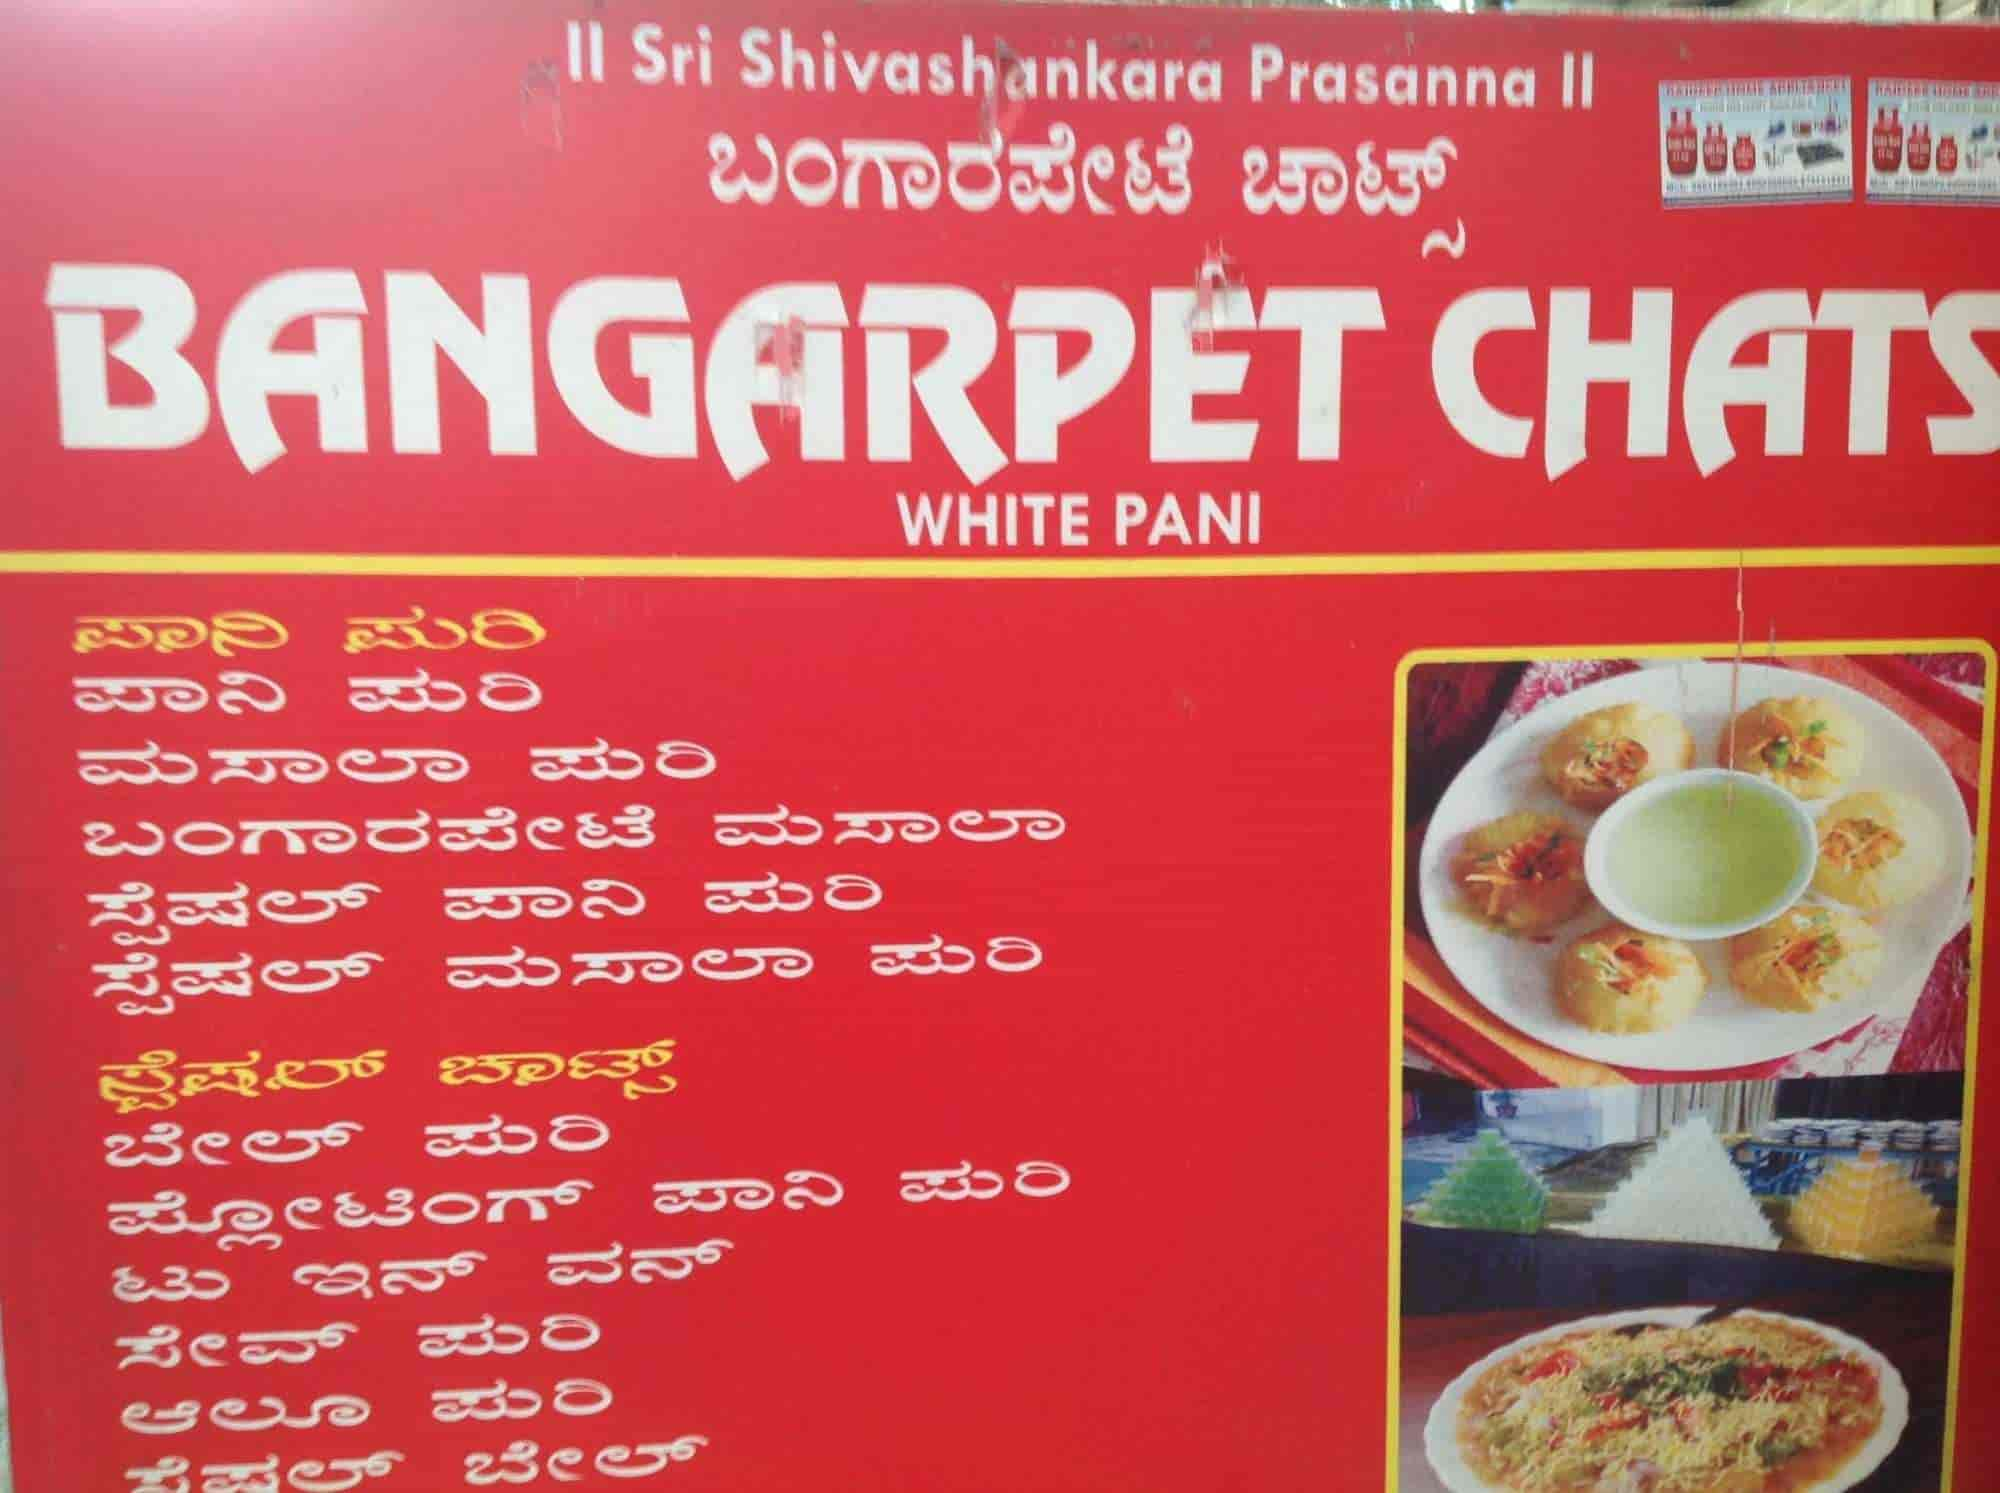 Bangarpet Chats, HSR Layout Sector 1, Bangalore , Caterers For Chaat ,  Justdial